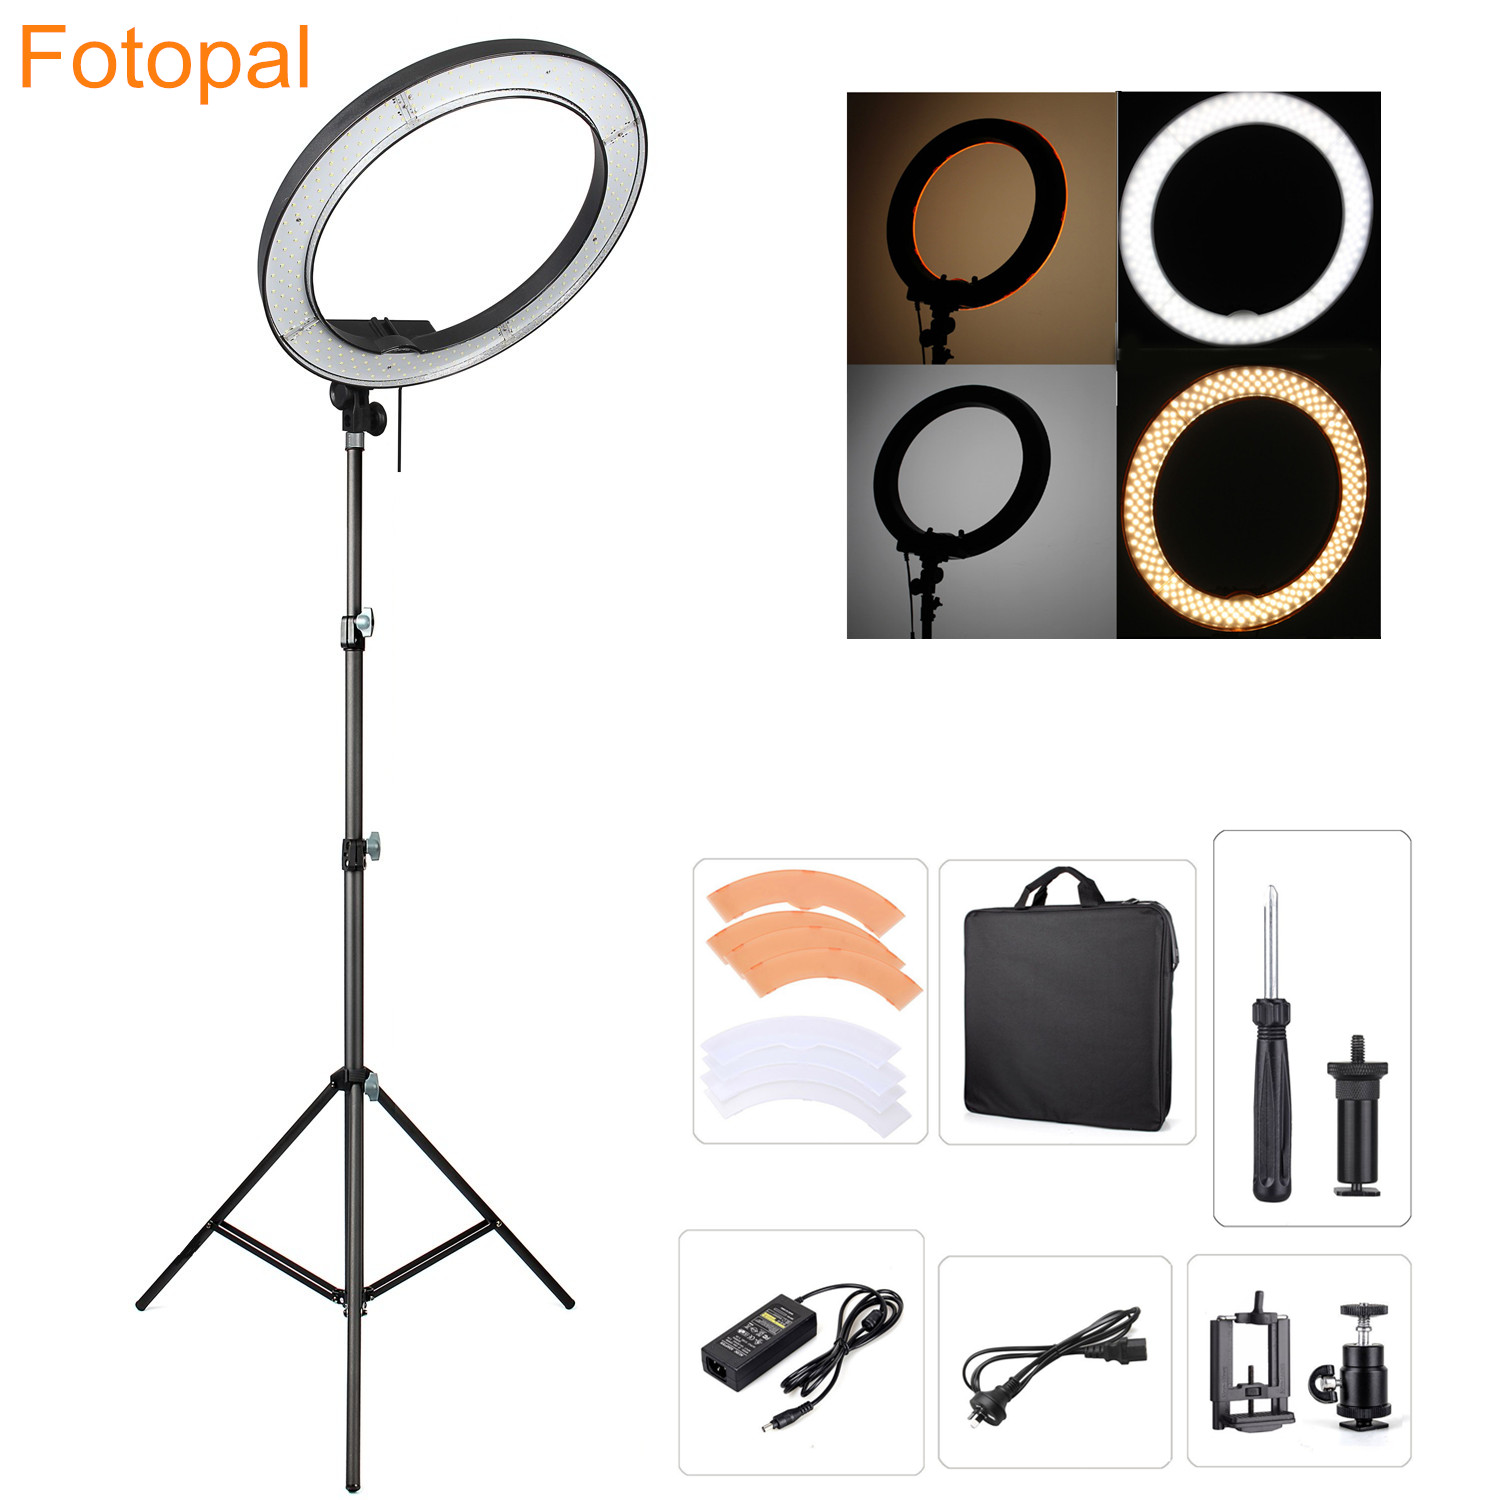 Fotopal Led Ring Light For Video Shoot Camera Phone Lighting With Stand Studio Photography Selfie Makeup Photo Circle Lamp-in Photographic Lighting from Consumer Electronics